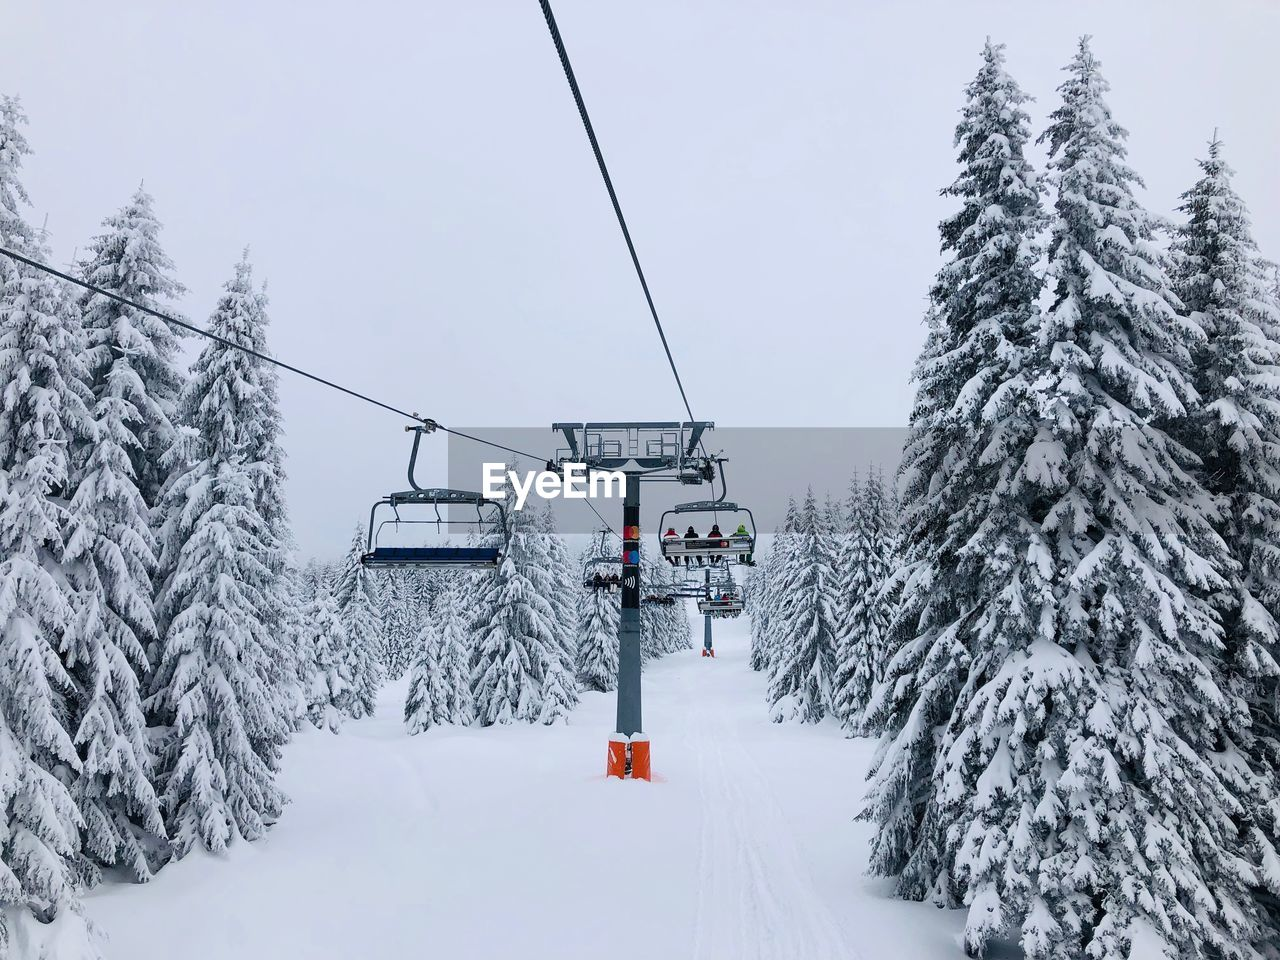 snow, winter, cold temperature, tree, cable car, plant, covering, nature, white color, transportation, ski lift, overhead cable car, beauty in nature, day, sky, no people, scenics - nature, cable, land, outdoors, snowcapped mountain